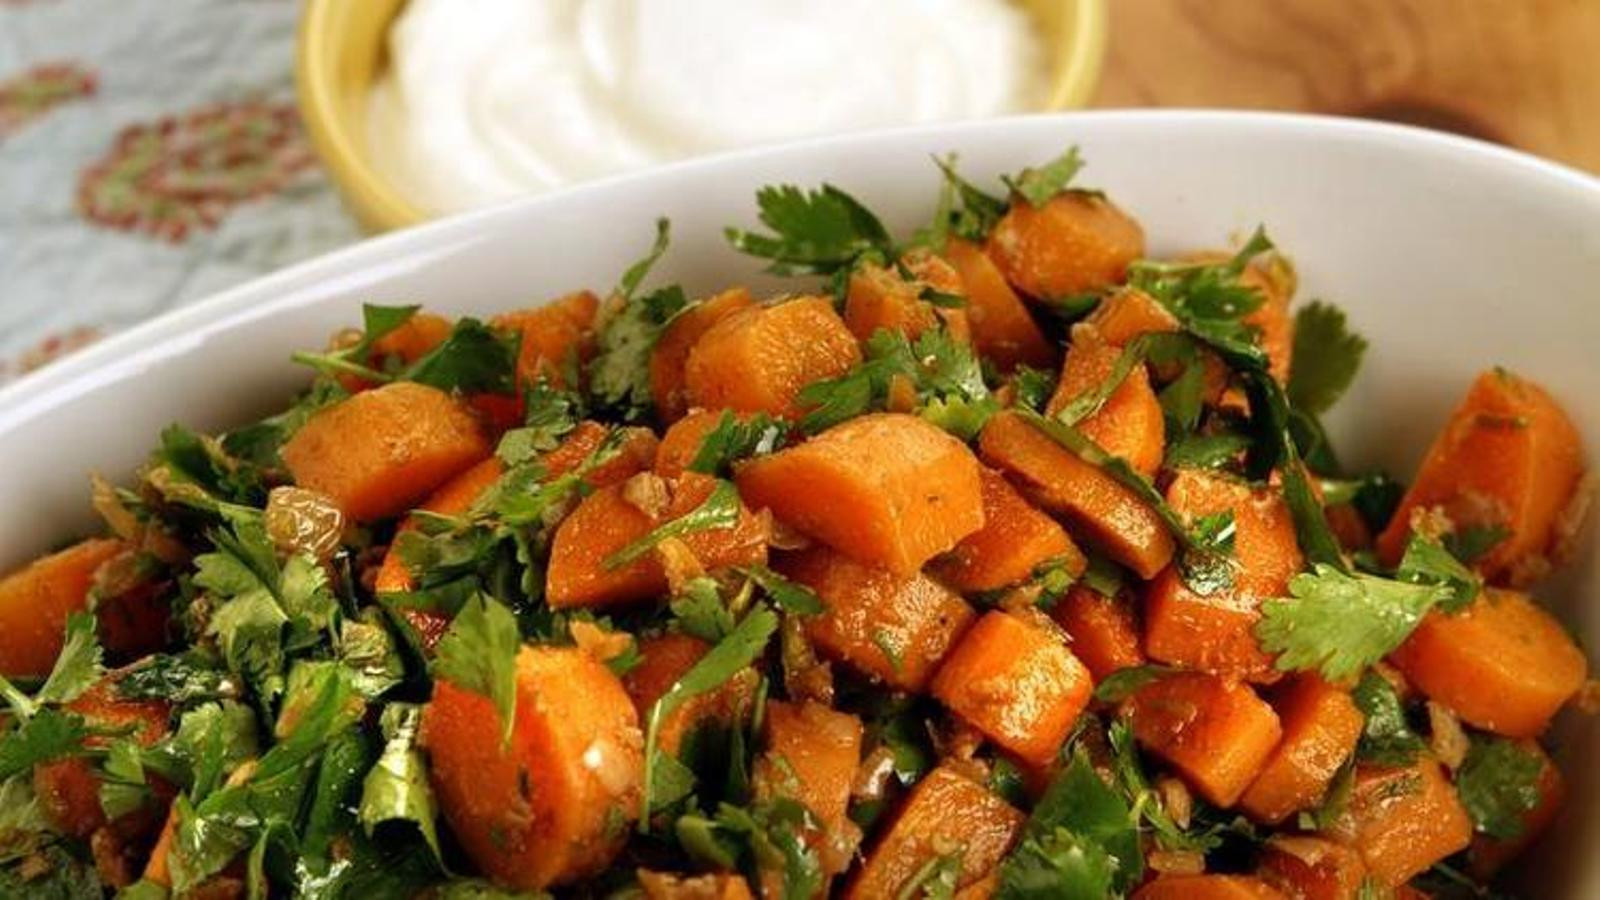 Carrot Salad Recipe  Try this spicy Moroccan carrot salad recipe for Meatless